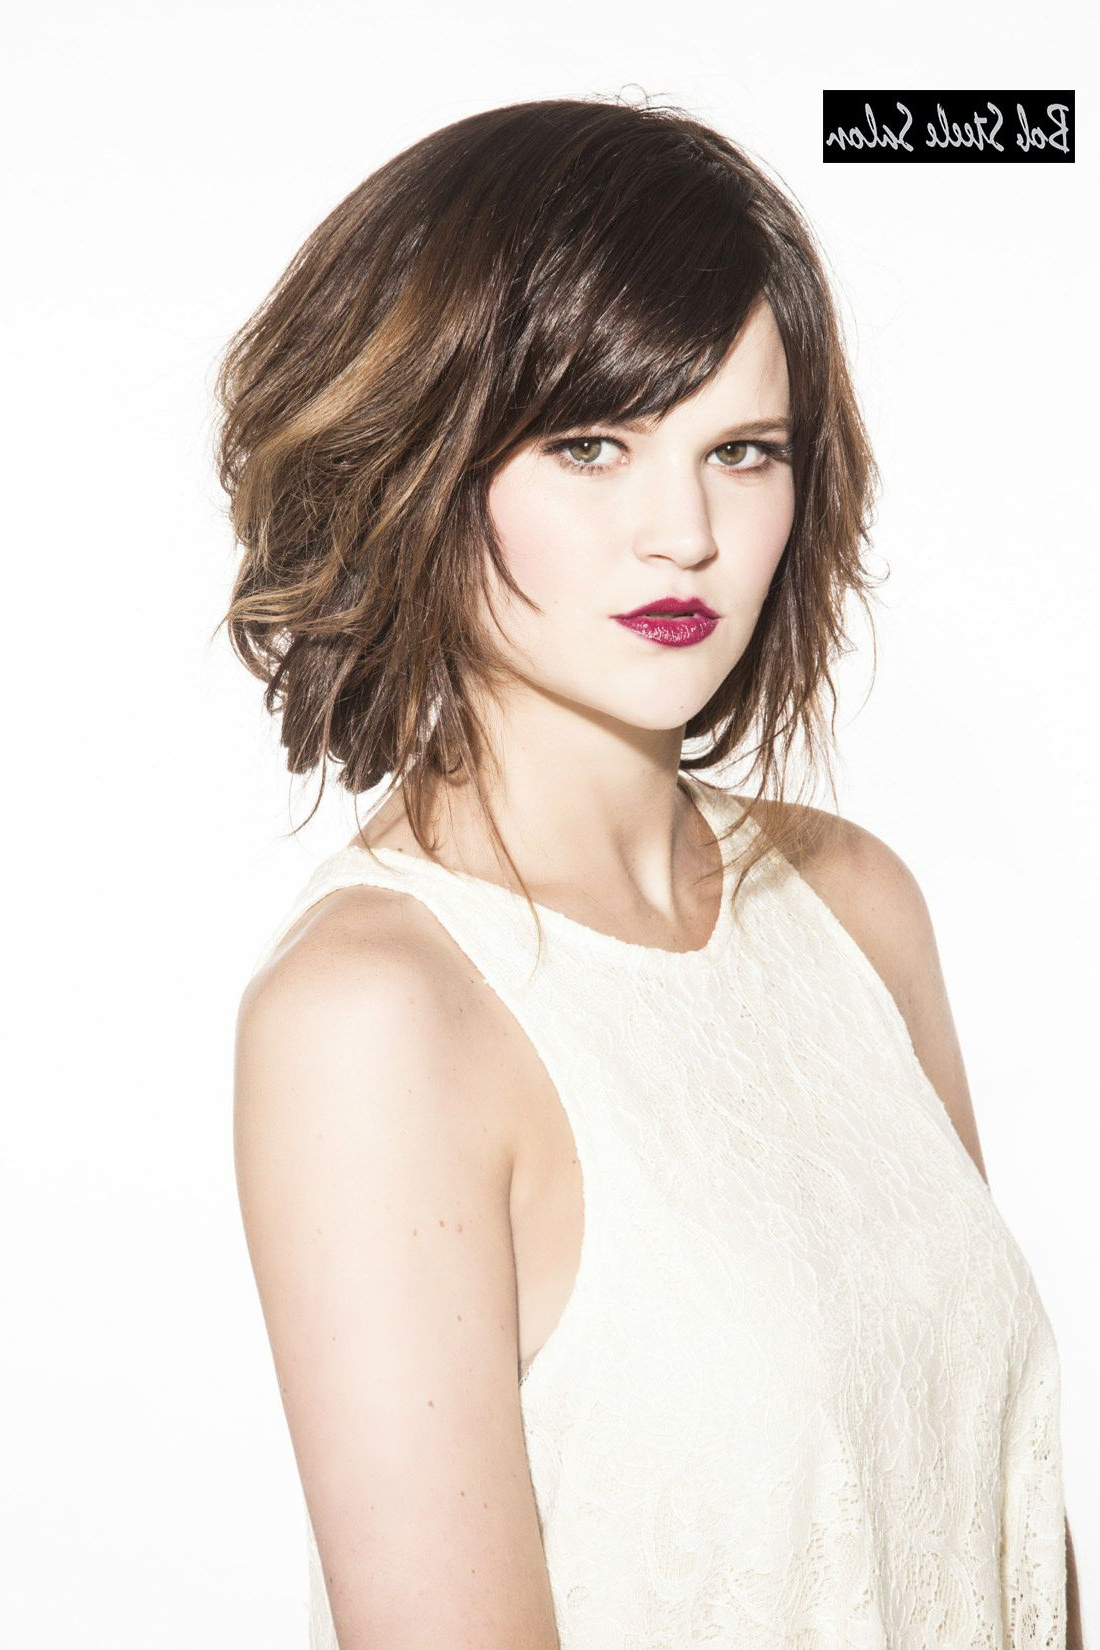 34 Greatest Short Haircuts And Hairstyles For Thick Hair For 2018 For Short Medium Haircuts For Thick Hair (View 12 of 25)